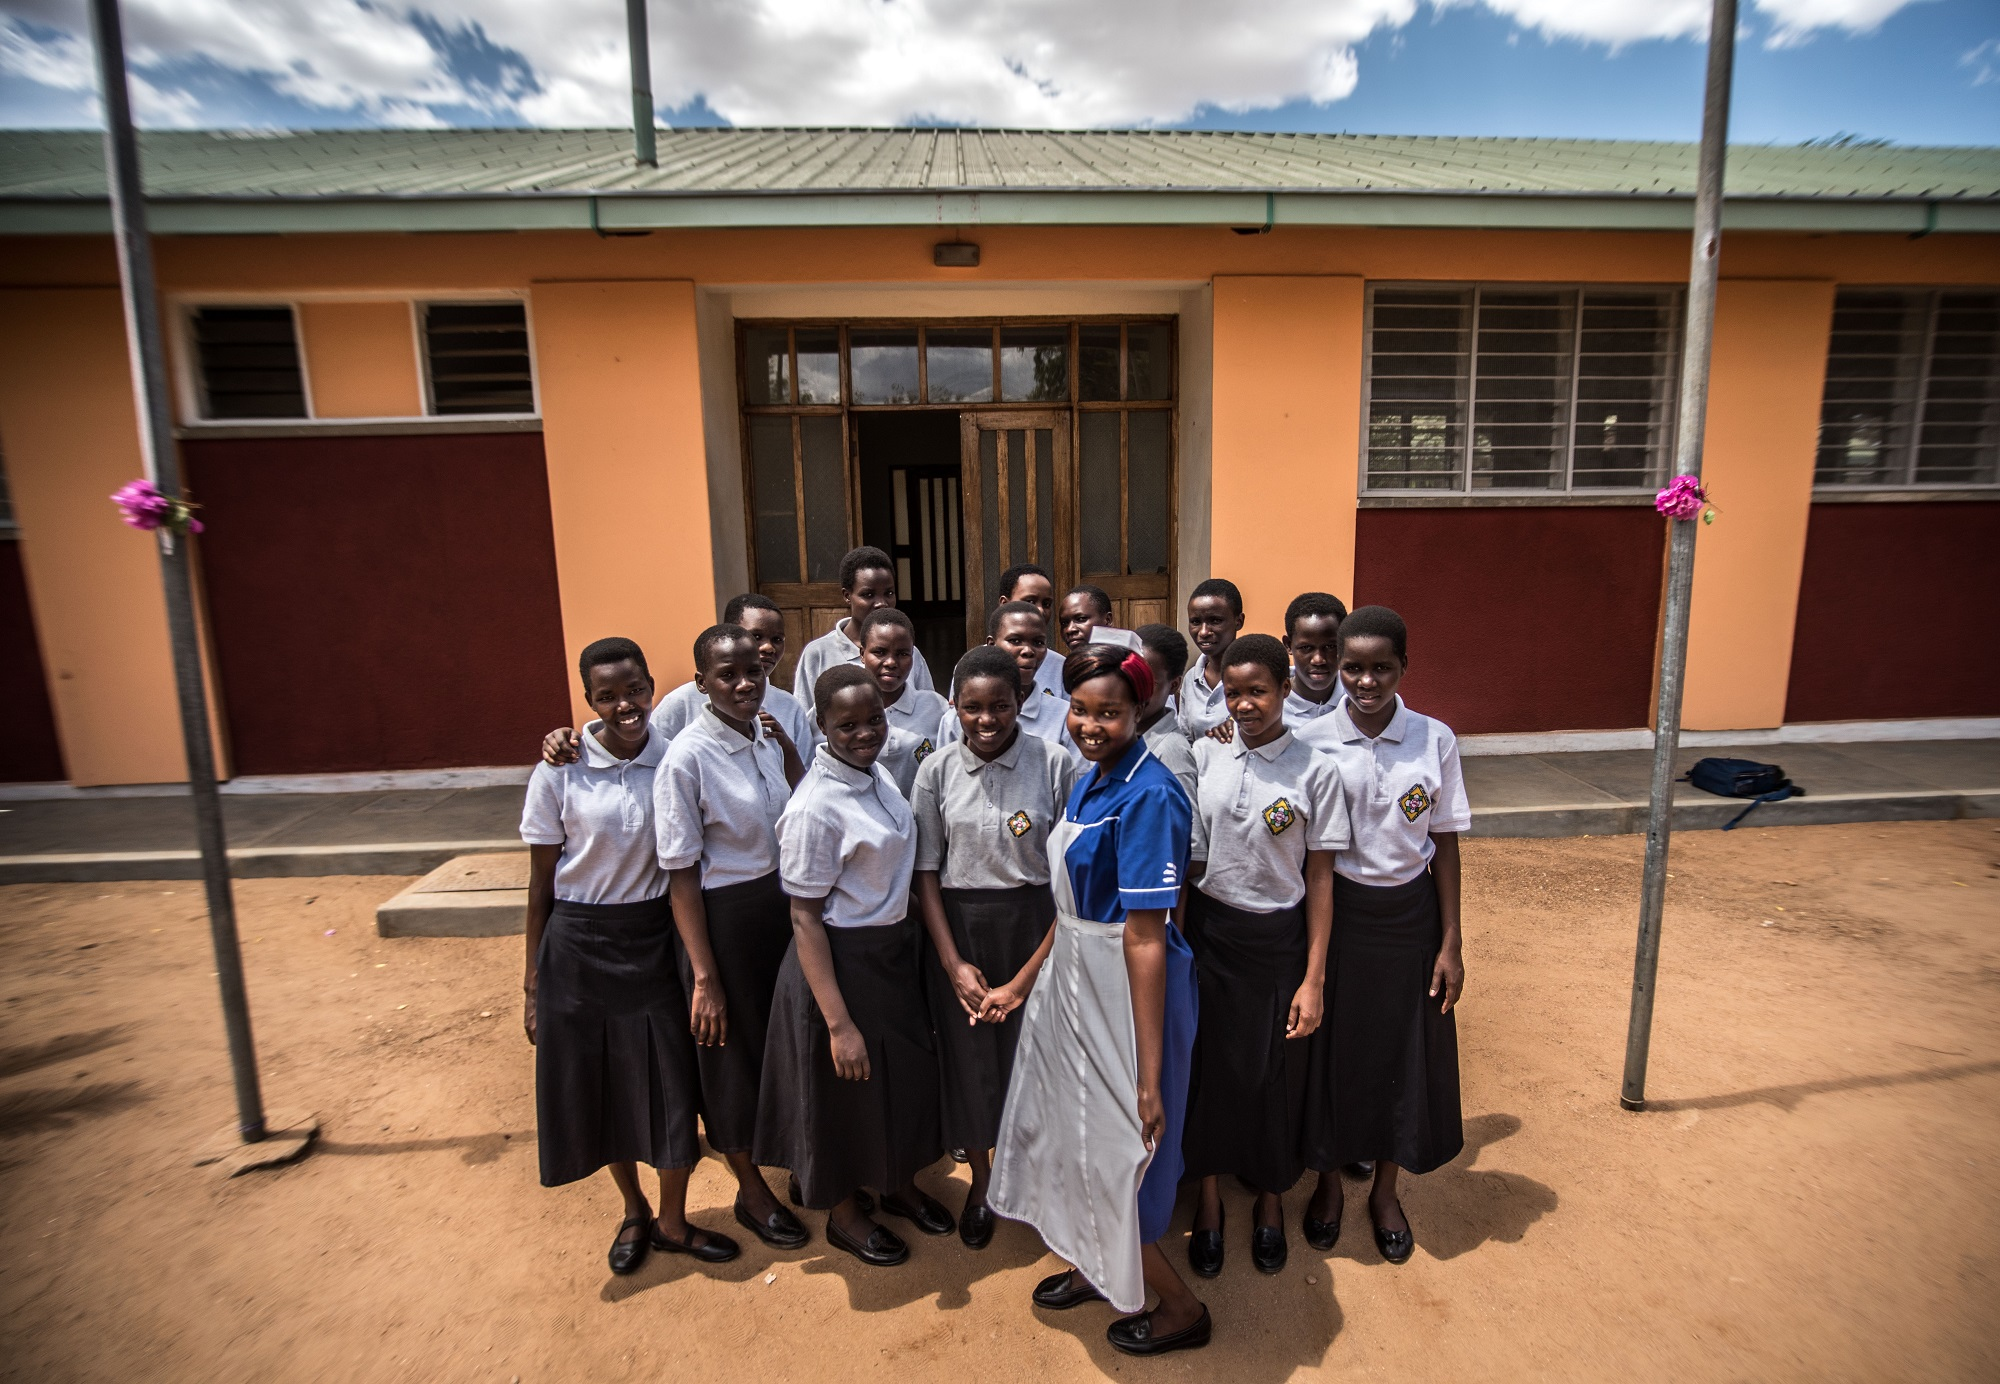 Students on Intrahealth-funded scholarships at the Matany School of Nursing and Midwifery in Karamoja, Uganda, pose for a picture in front of the school building.